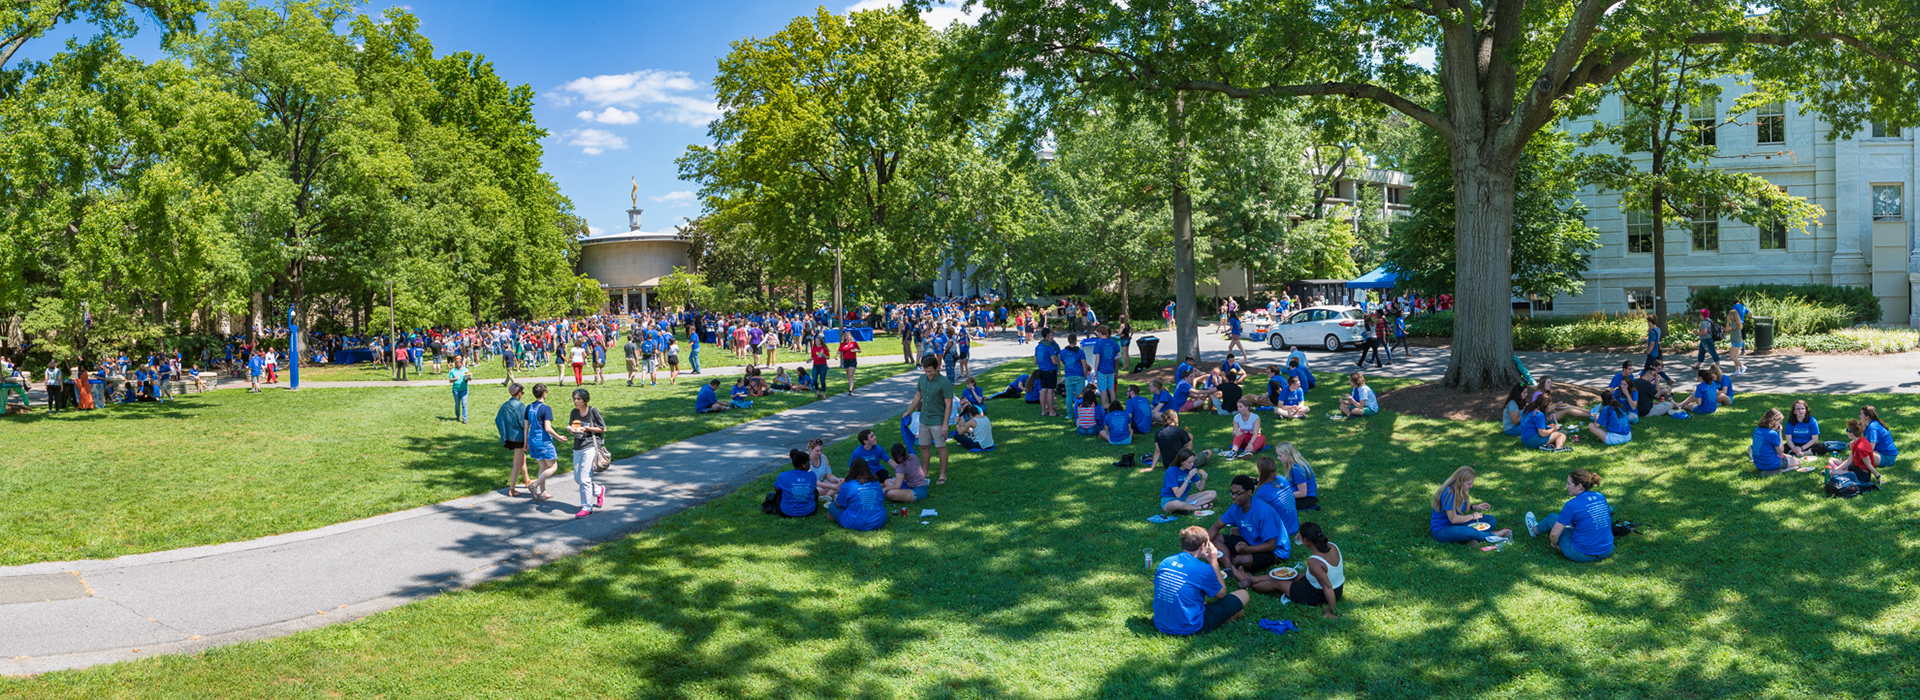 New students relax on the quad. Key Spiritual Life Center (also known as the flaming cupcake because of its bronze flame) is visible.